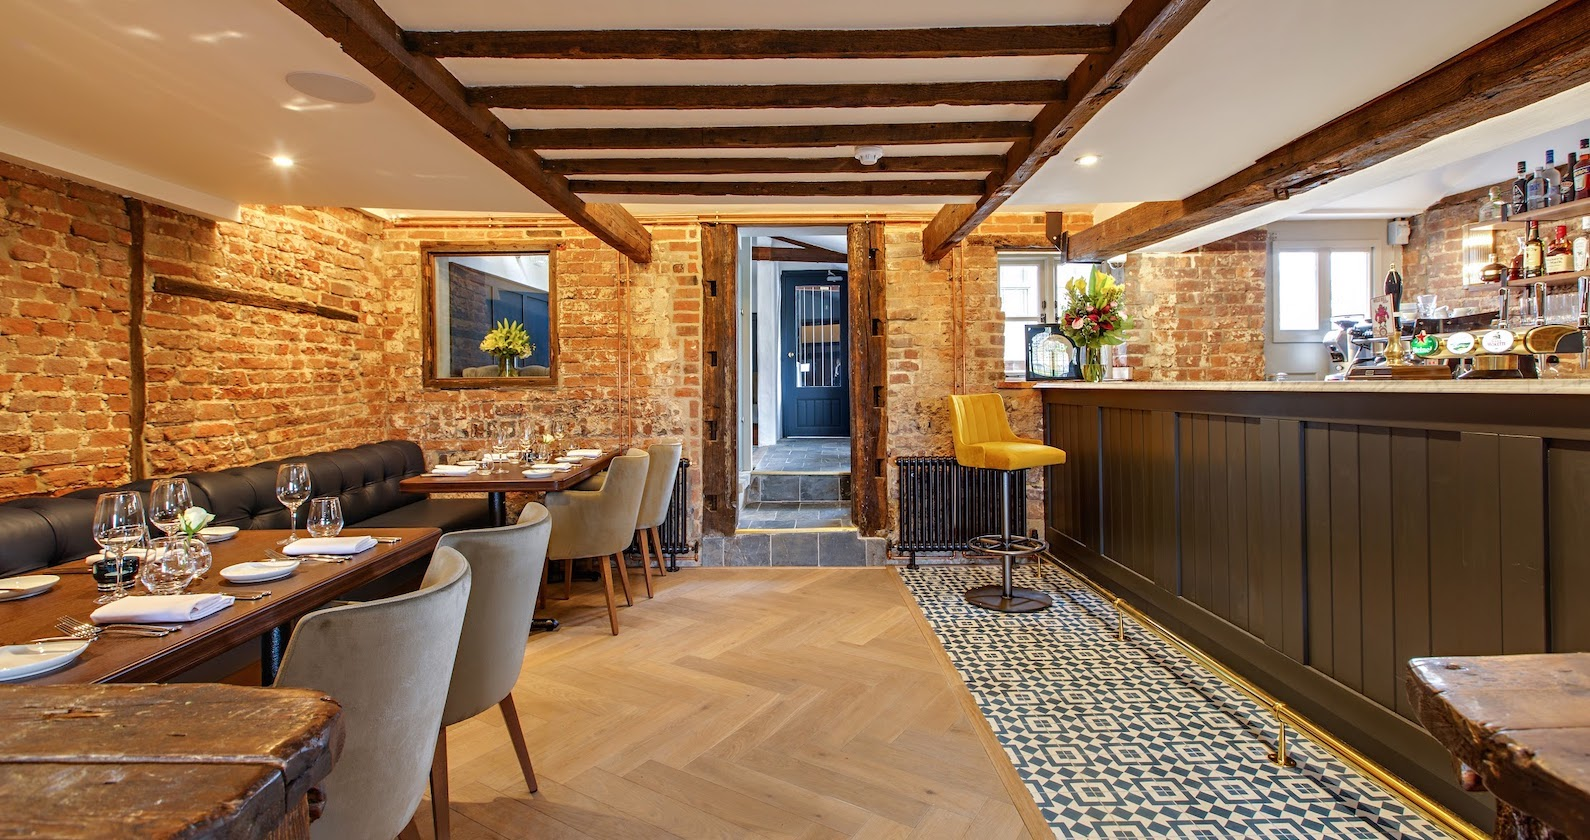 The Ingham Swan, Restaurant with Rooms - Norfolk